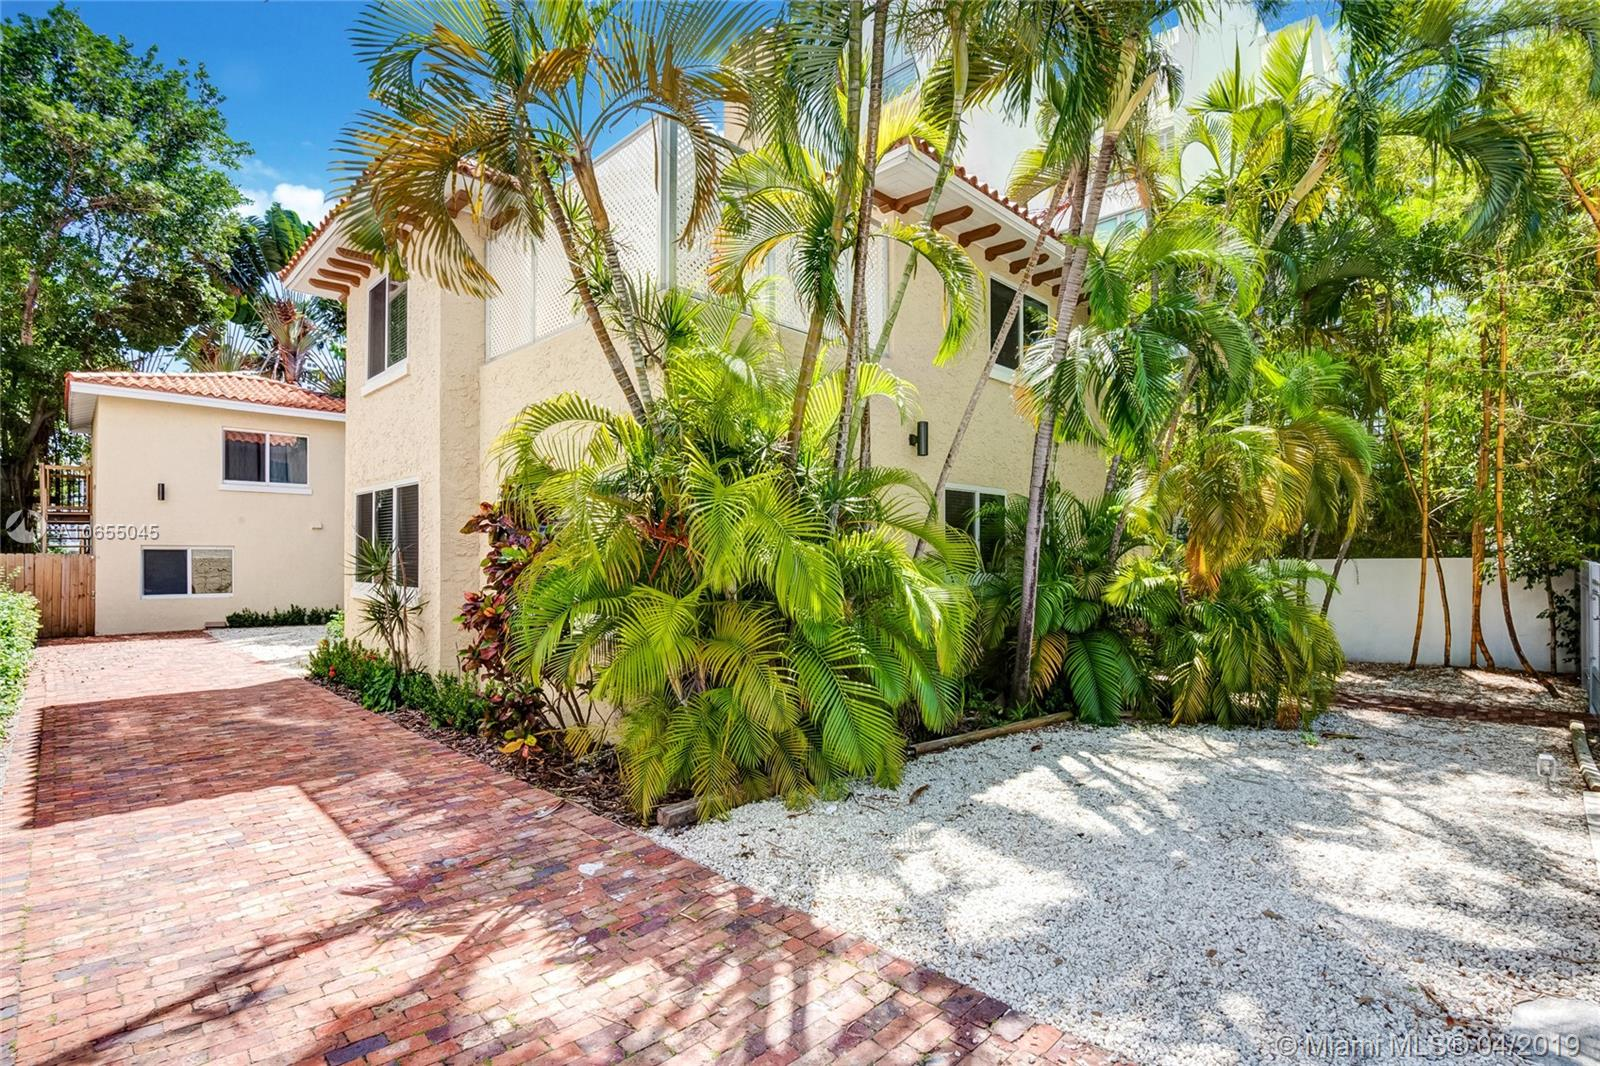 1326  16th St  For Sale A10655045, FL